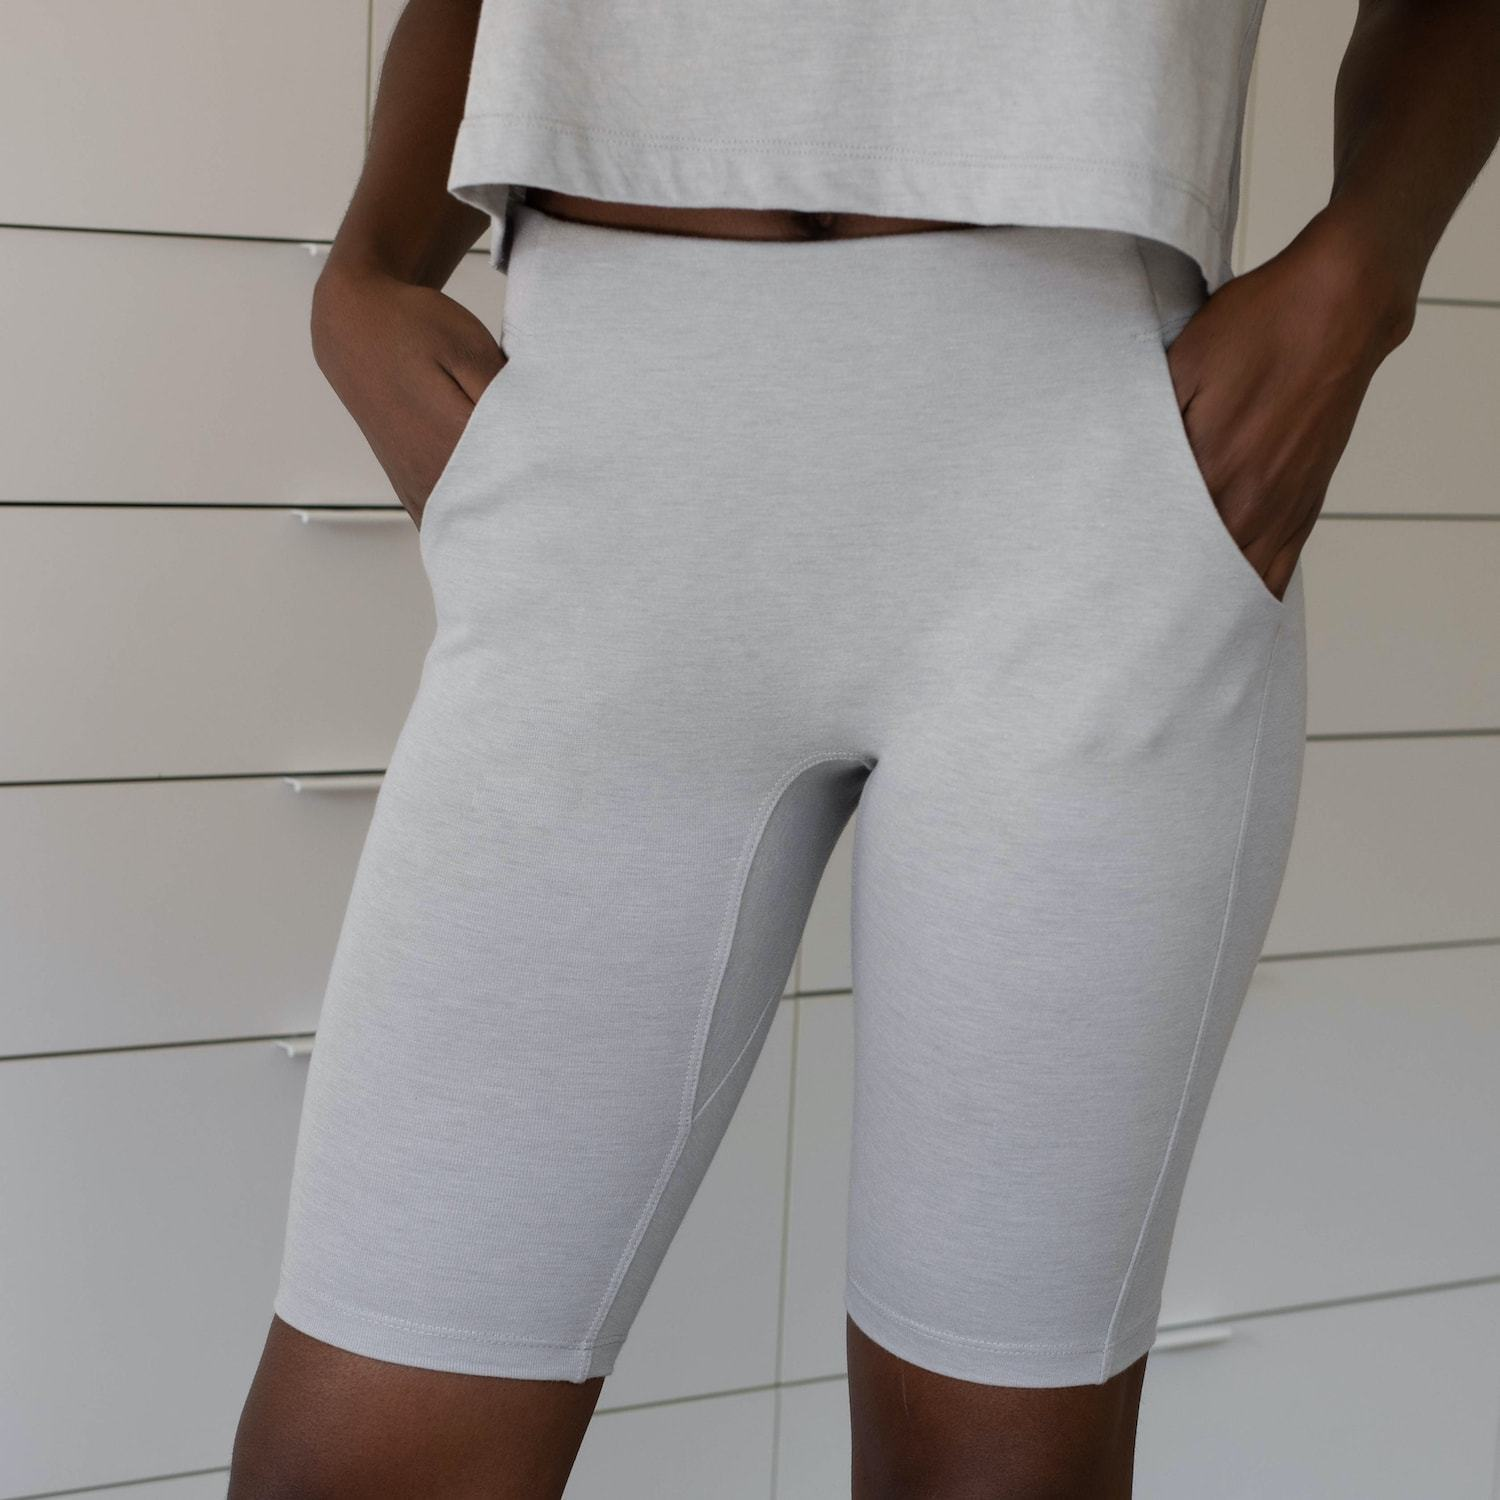 Lunya Sleepwear Restore Bike Short - #Moonstone